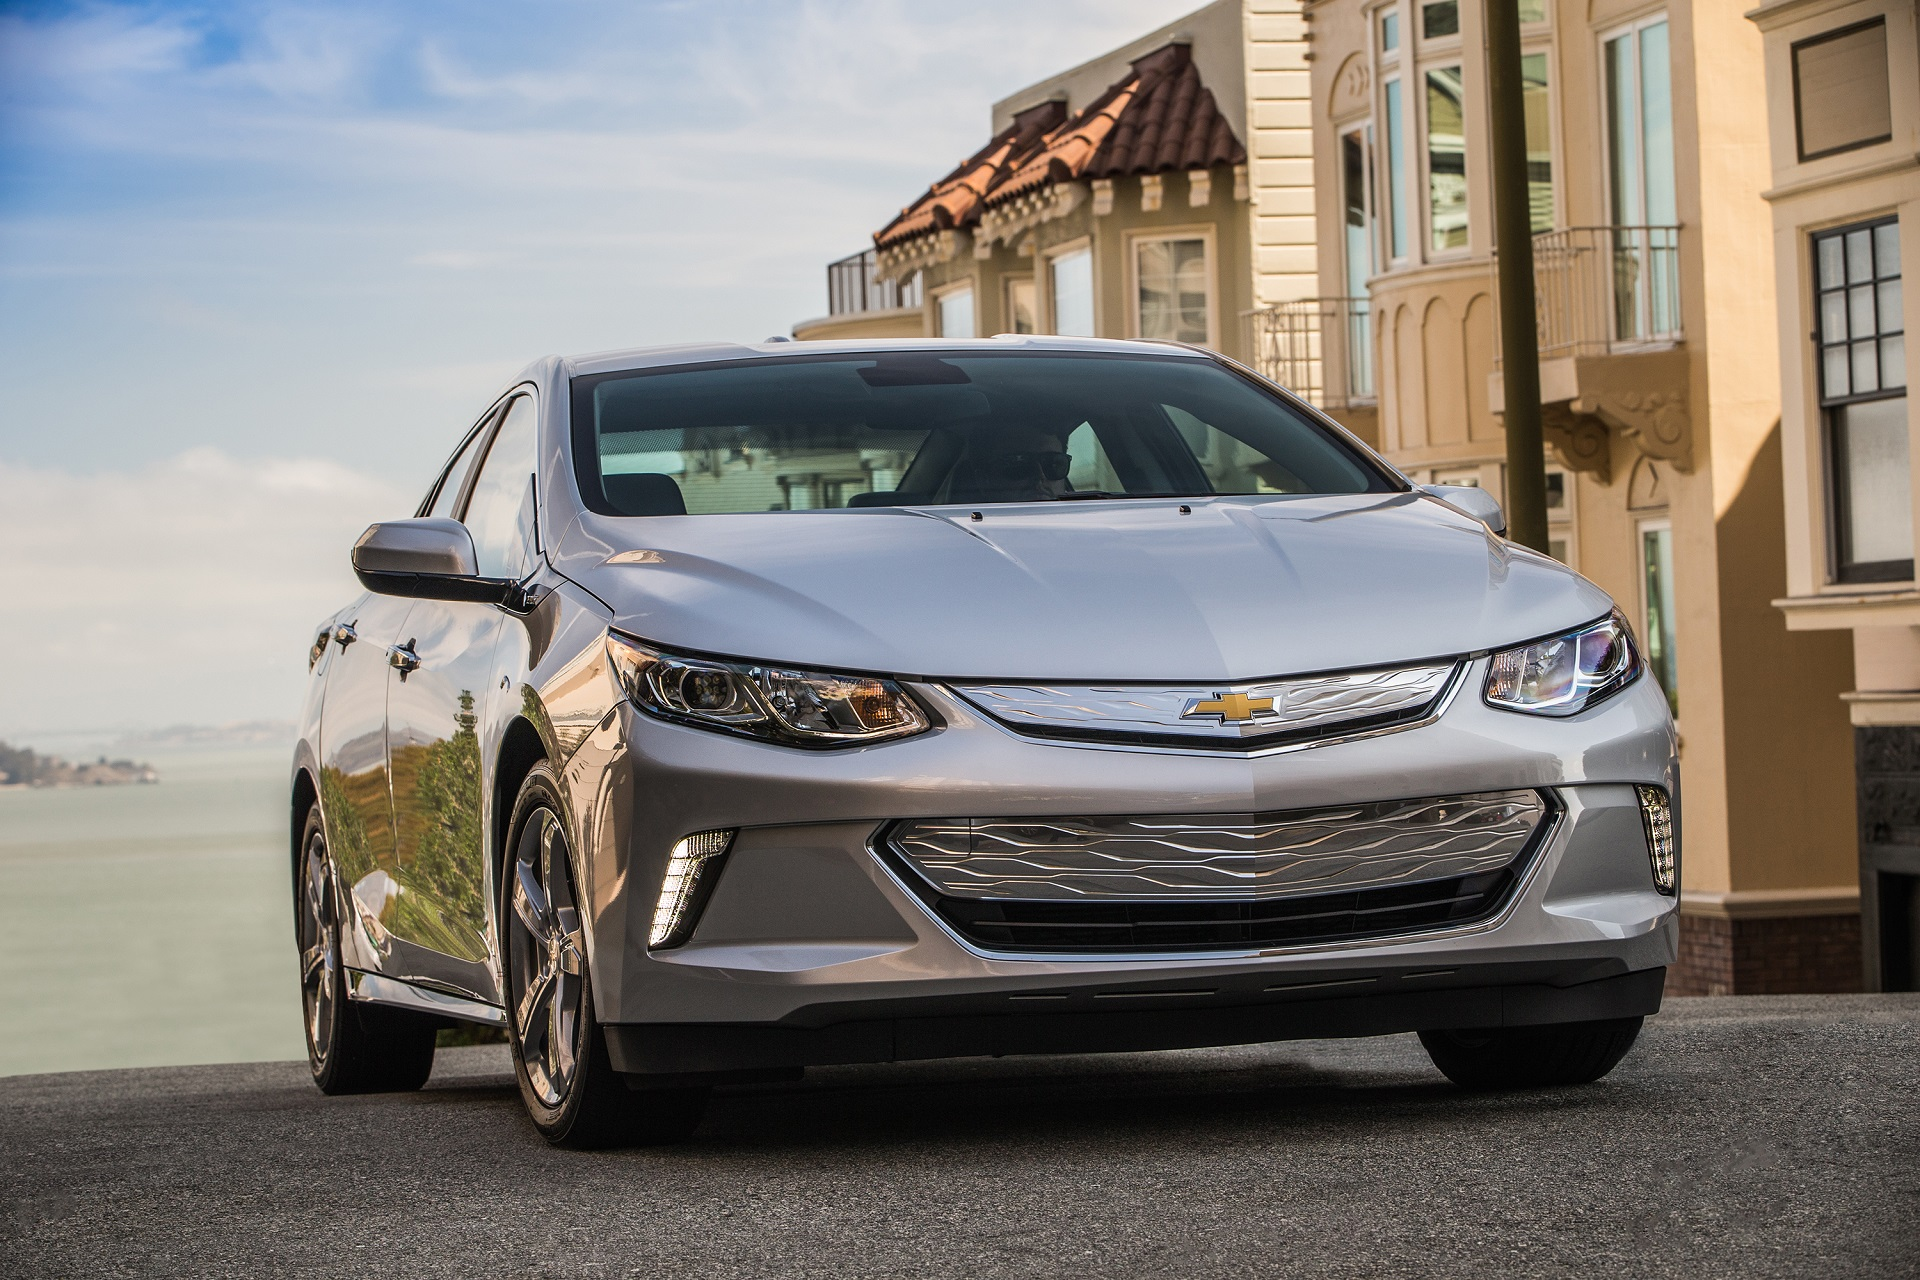 2017 Chevrolet Volt Chevy Safety Review And Crash Test